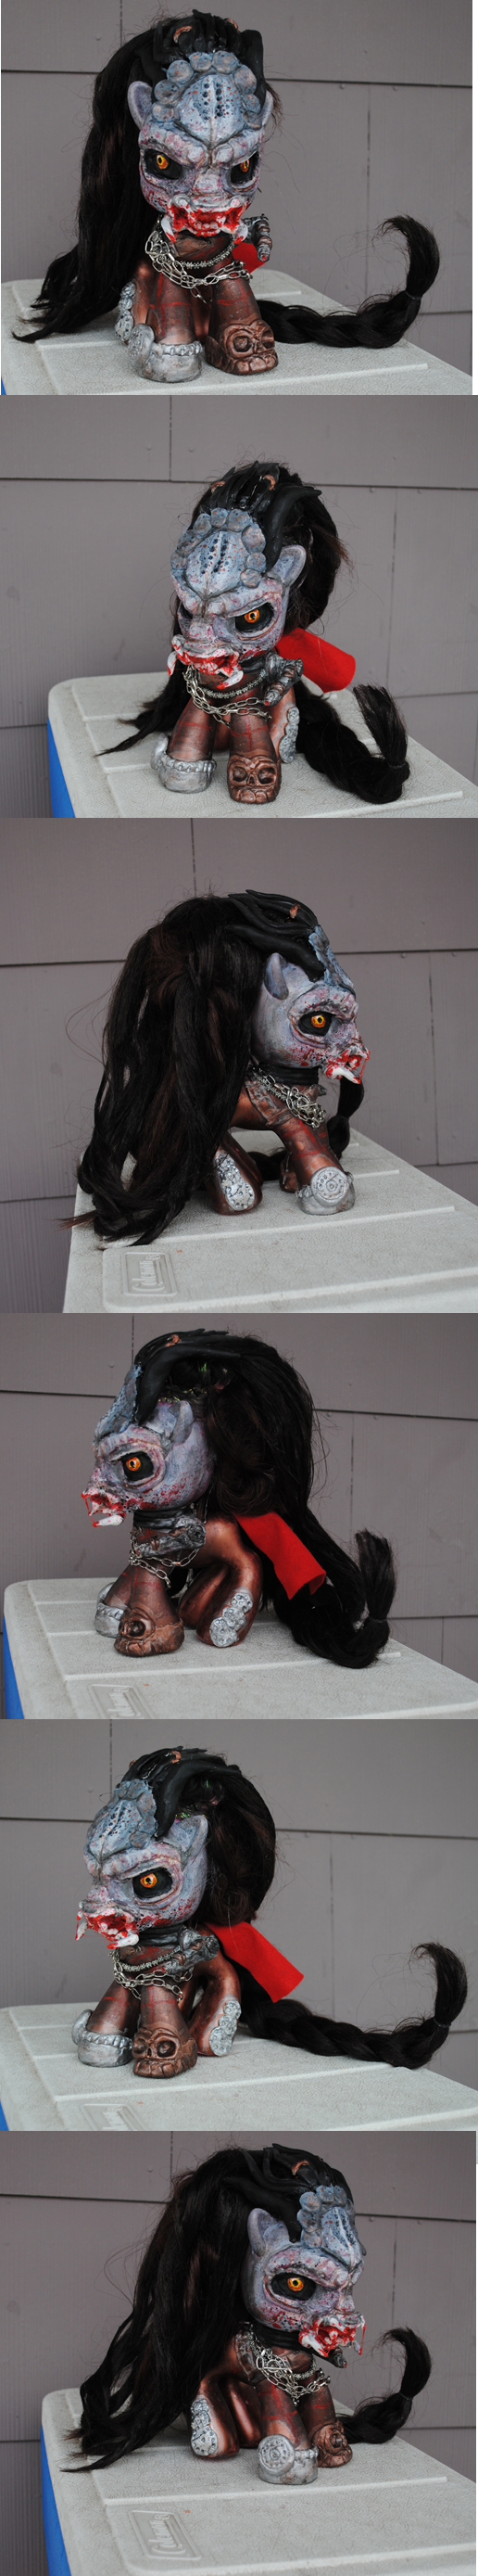 My little pony Predator 2 by Tat2ood-Monster